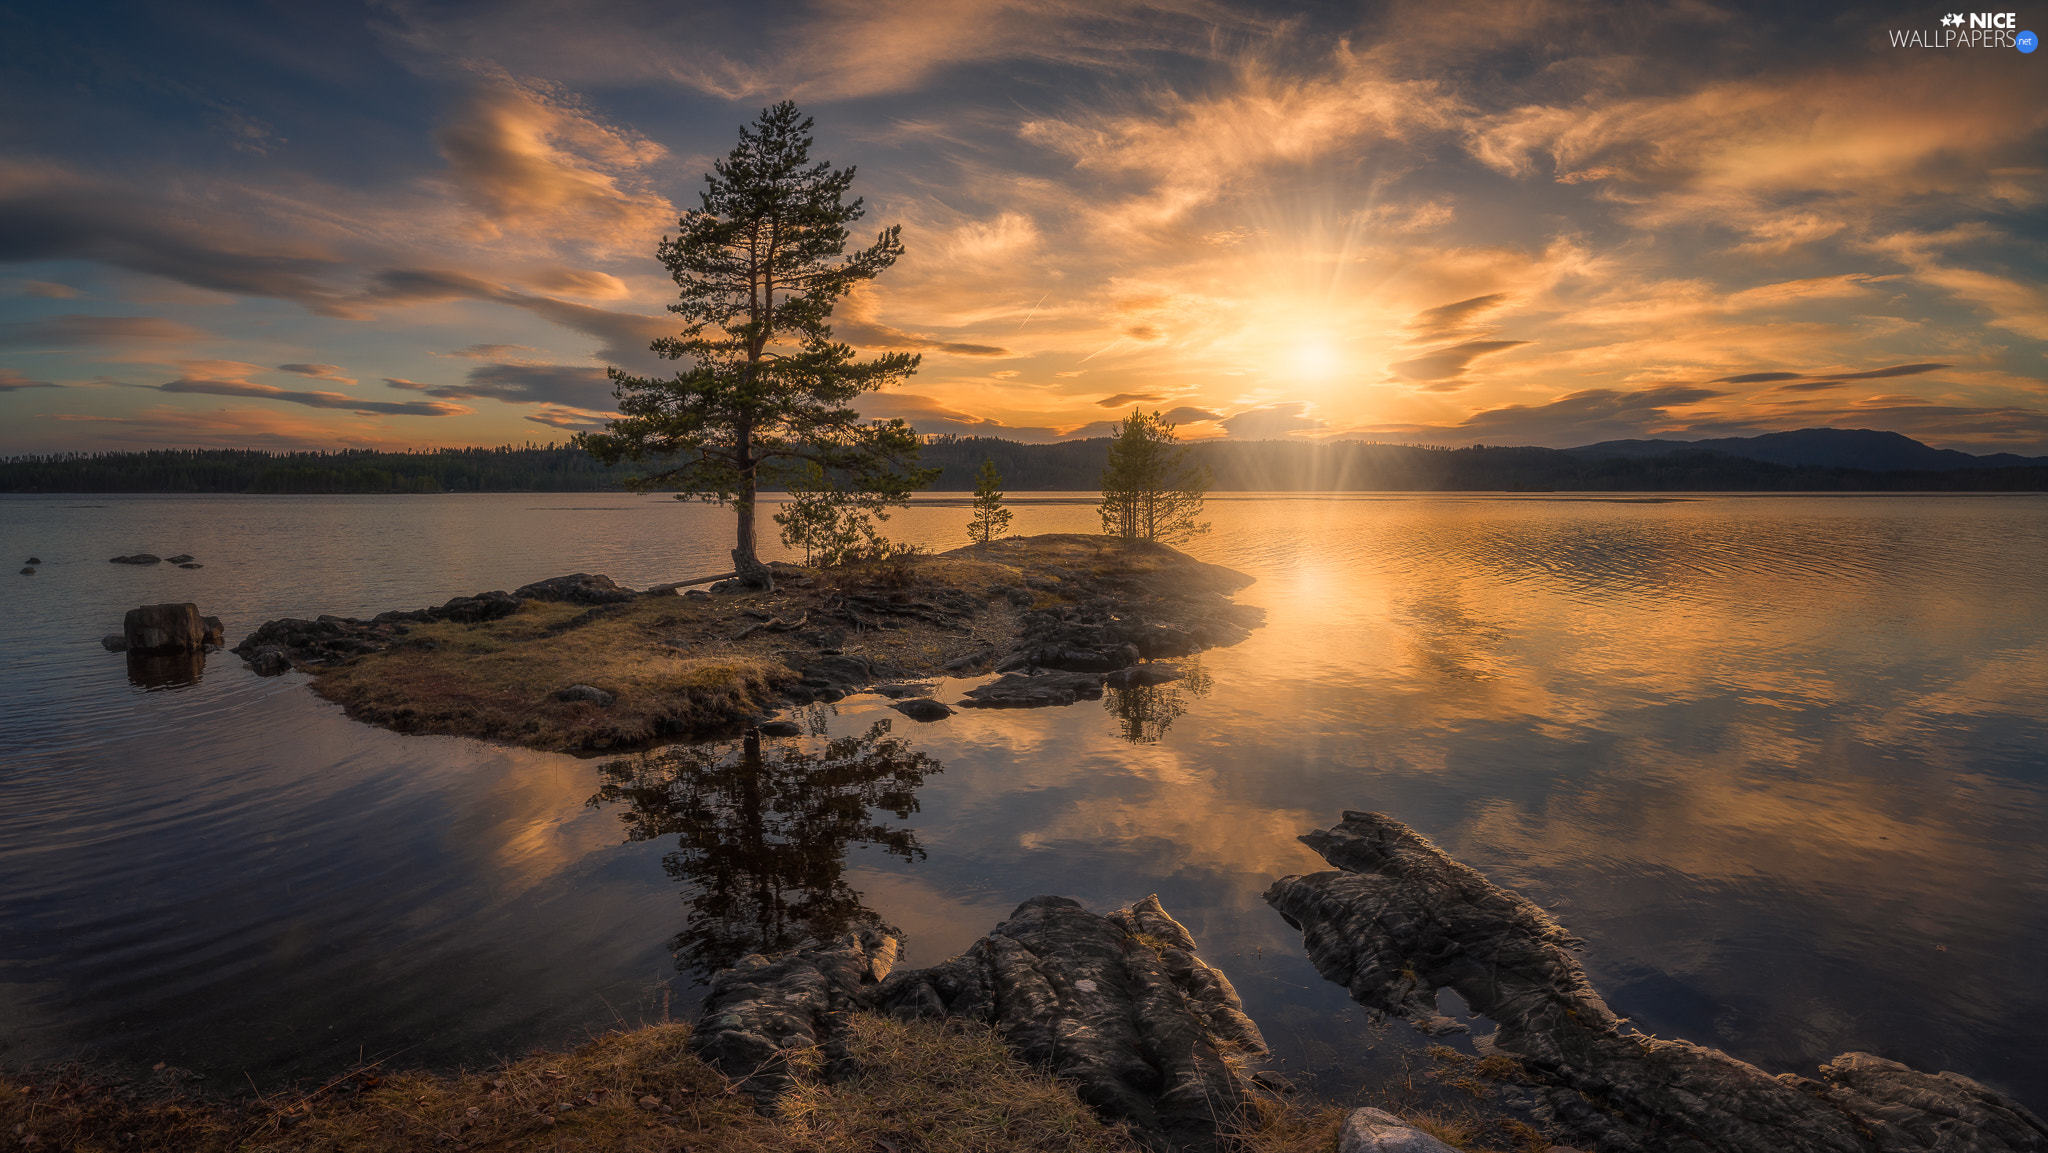 lake, Ringerike Municipality, trees, Sunrise, Norway, Islet, viewes